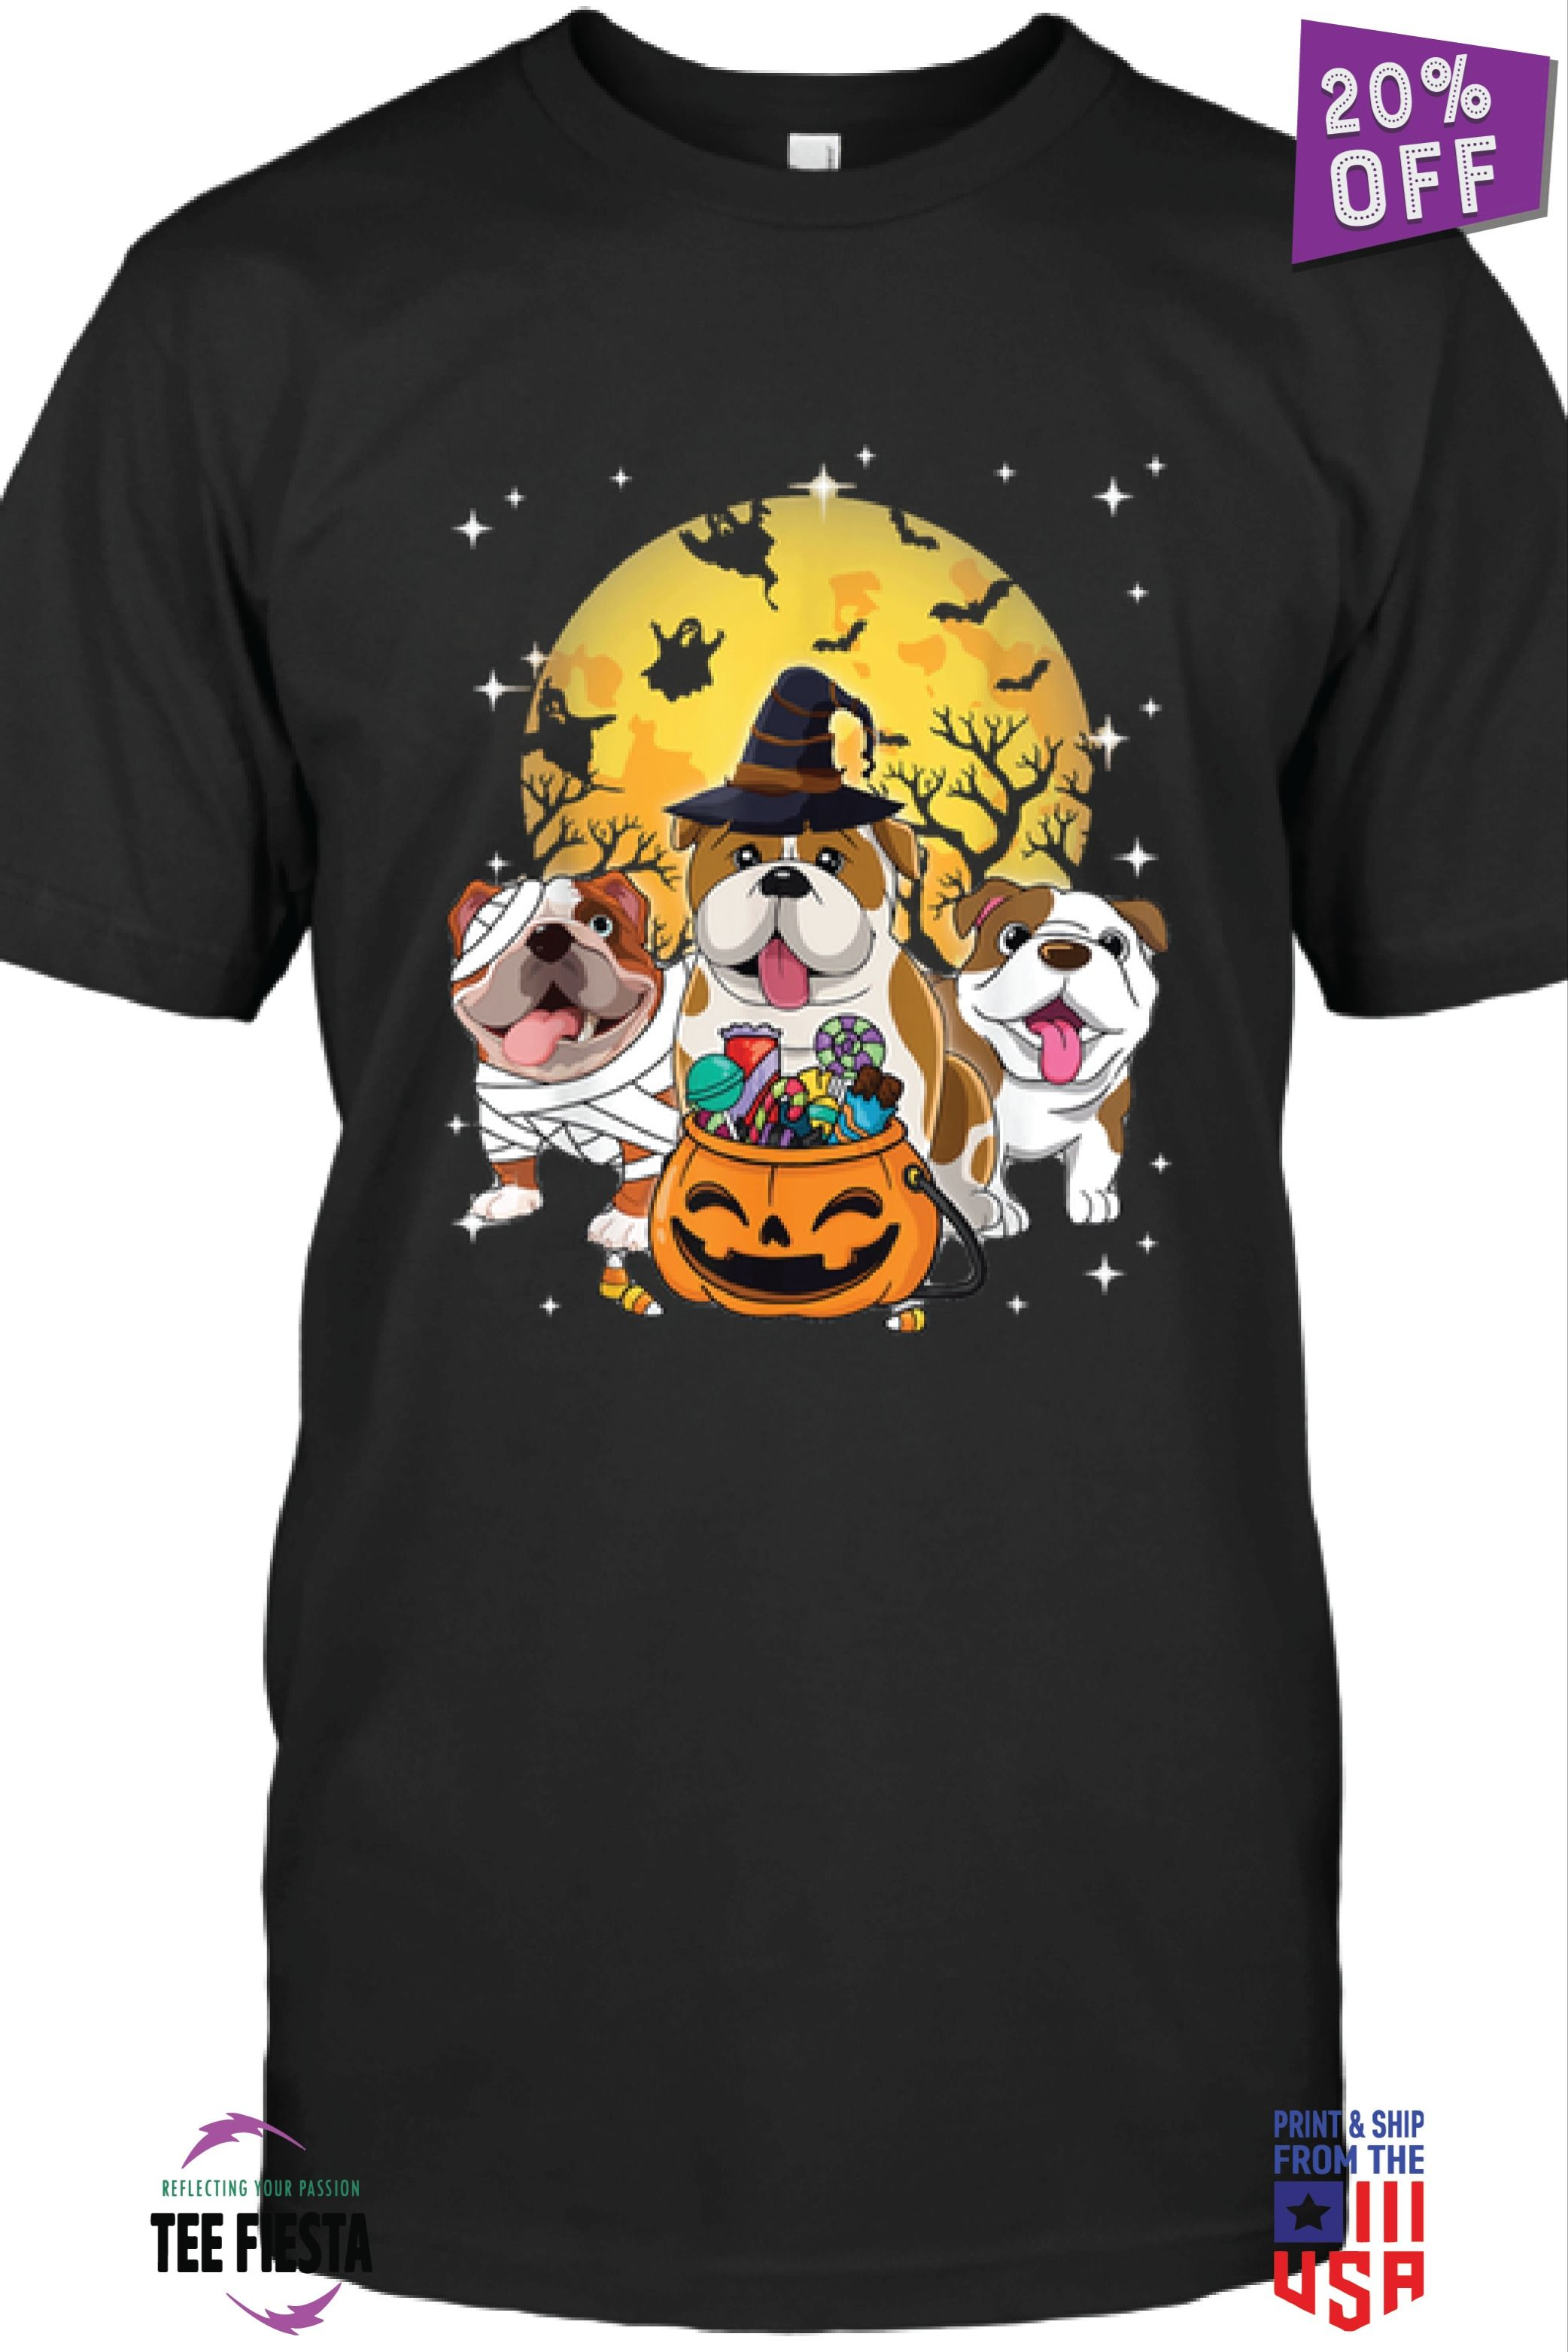 ENGLISH BULLDOG | FUNNY HALLOWEEN UNISEX TEES | GET 20% OFF | LIMITED TIME OFFER #funnybulldog